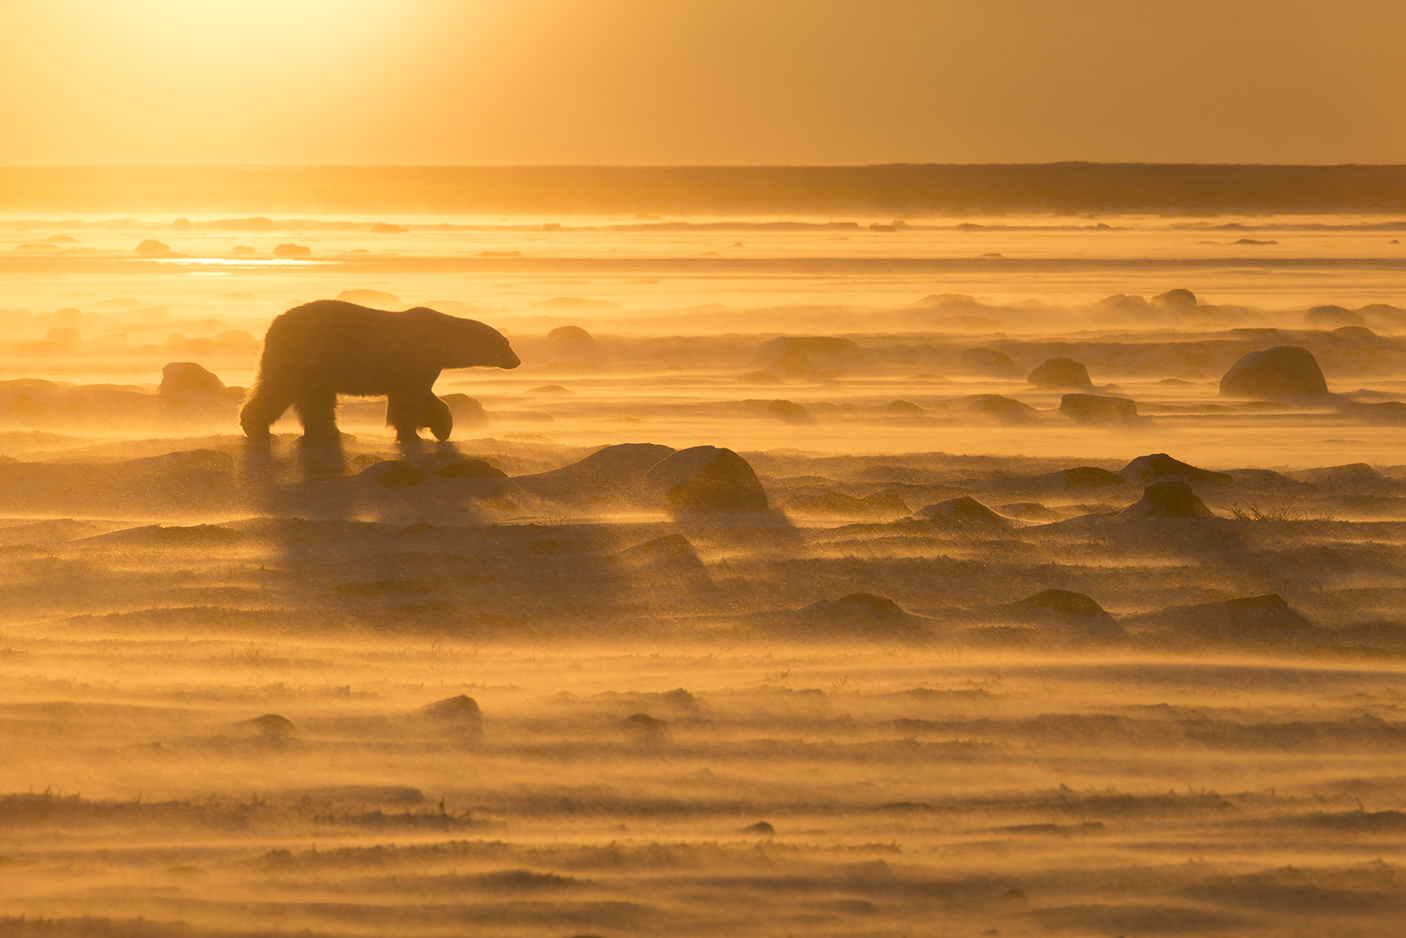 A polar bear, silhouetted by a vibrant orange sunset, moves across the tundra amid blowing snow